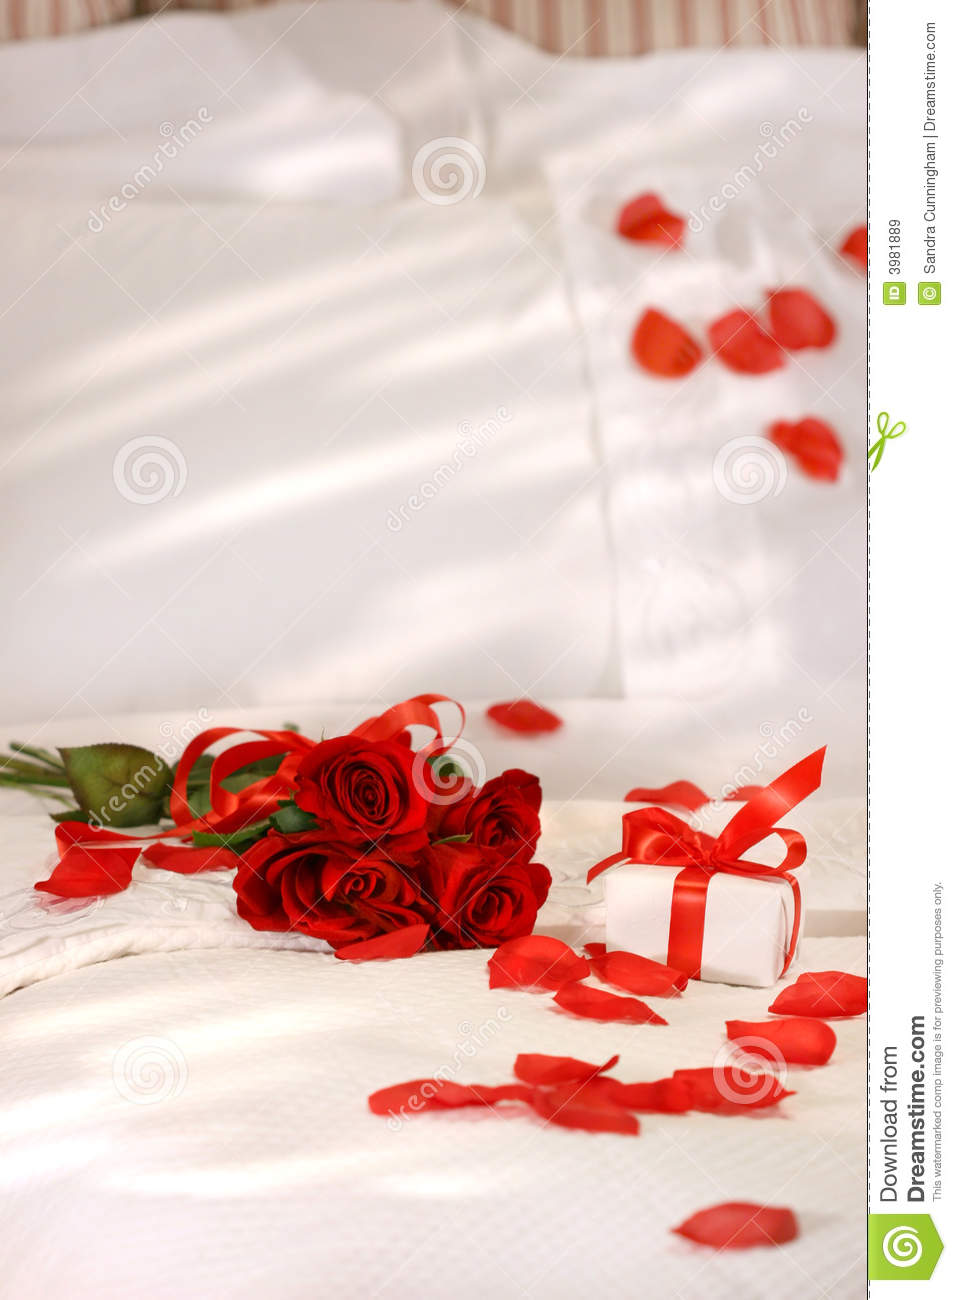 Red Roses On A Bed Stock Image Image Of Valentine